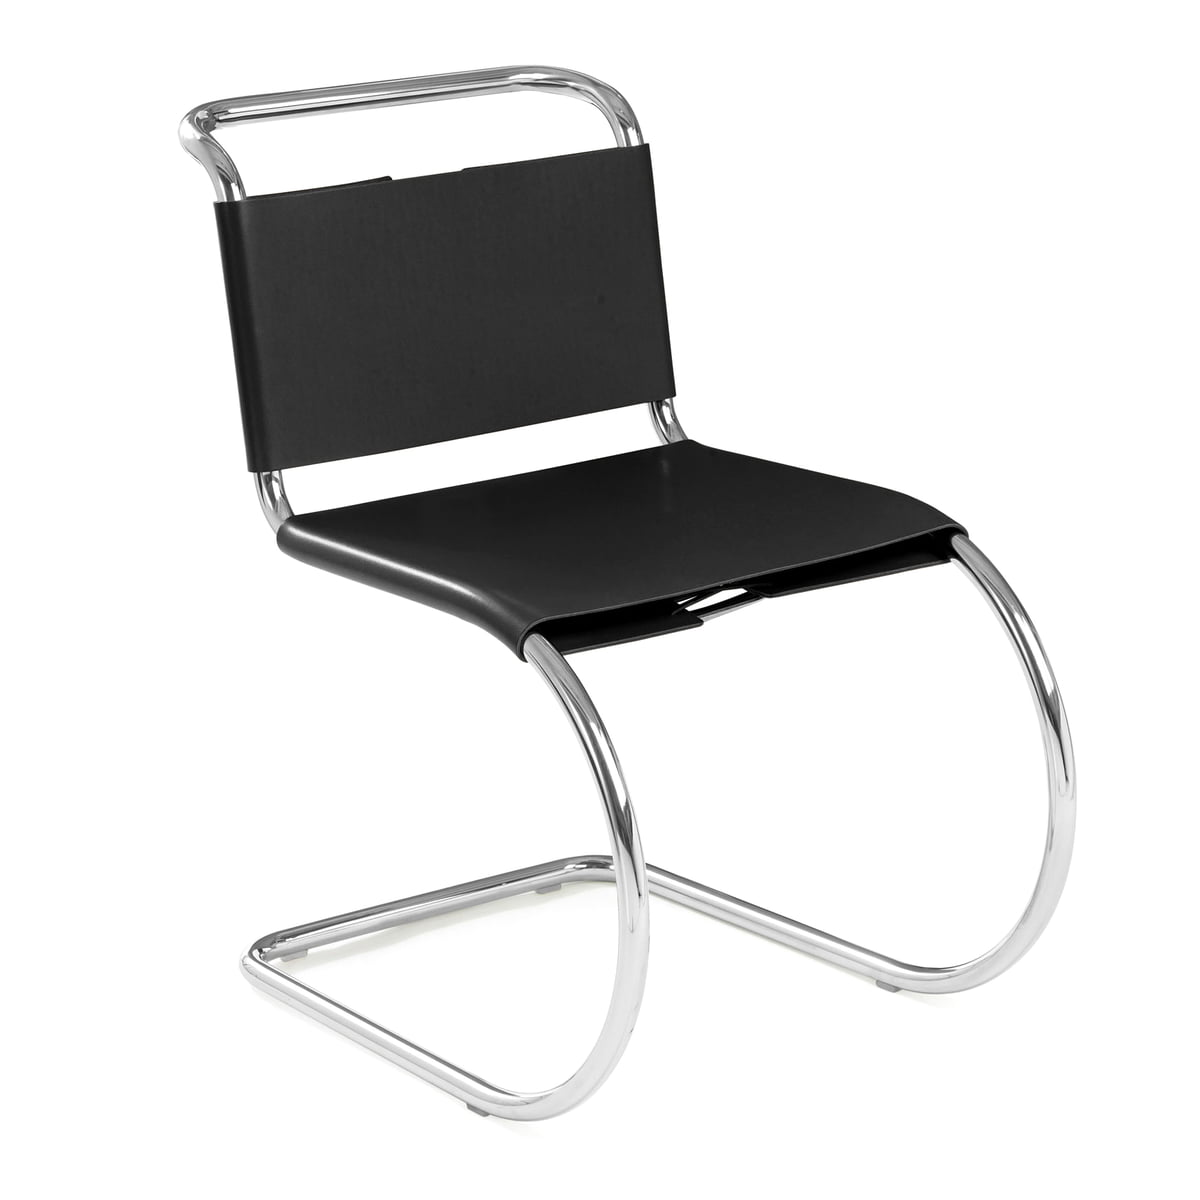 The Mr Side Chair By Knoll In The Shop